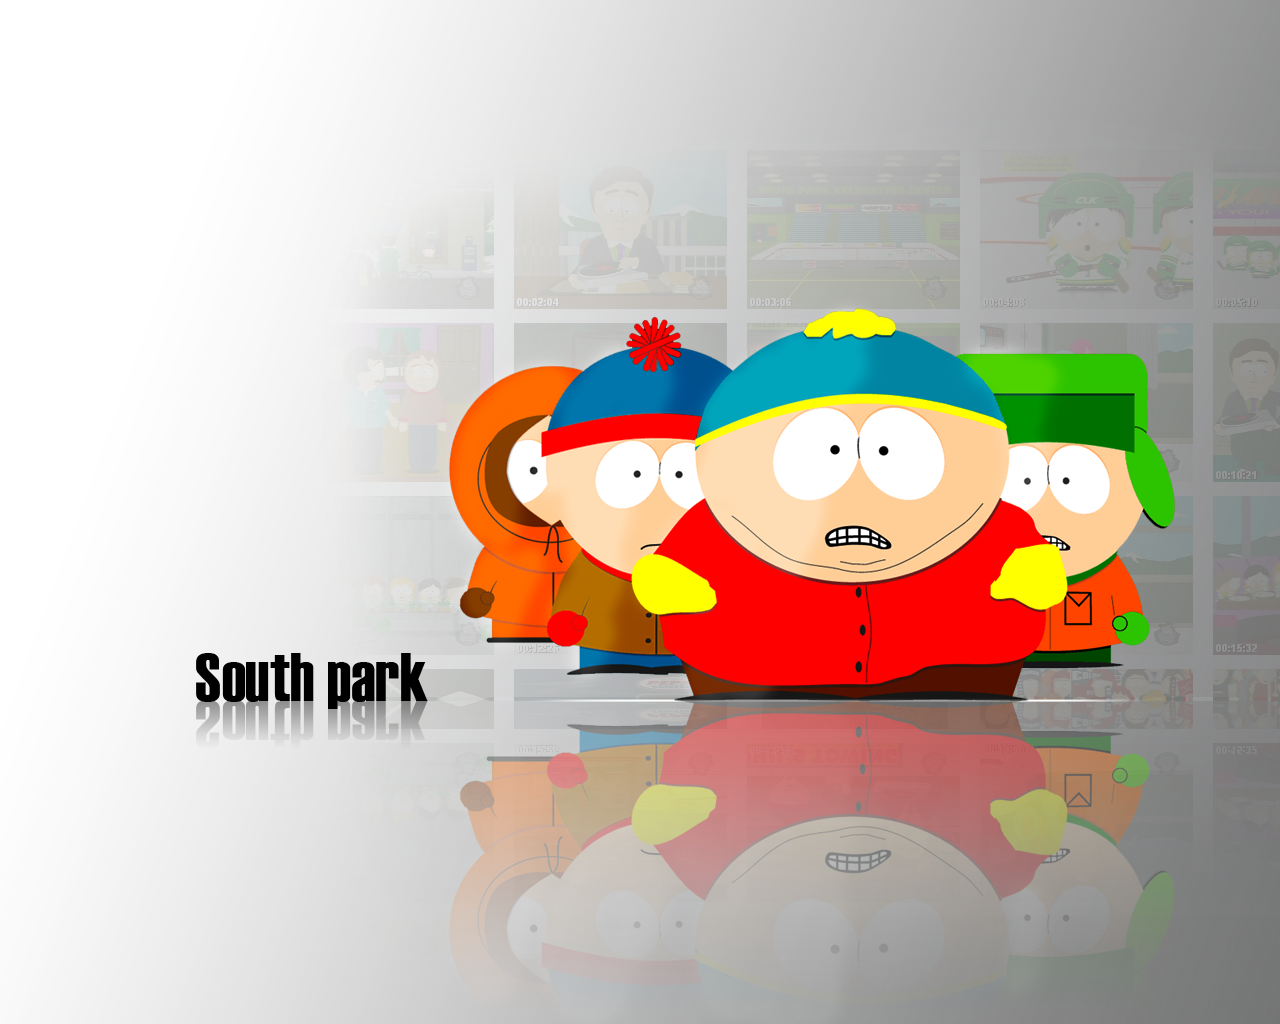 south park wallpapers hd desktop backgrounds images and pictures